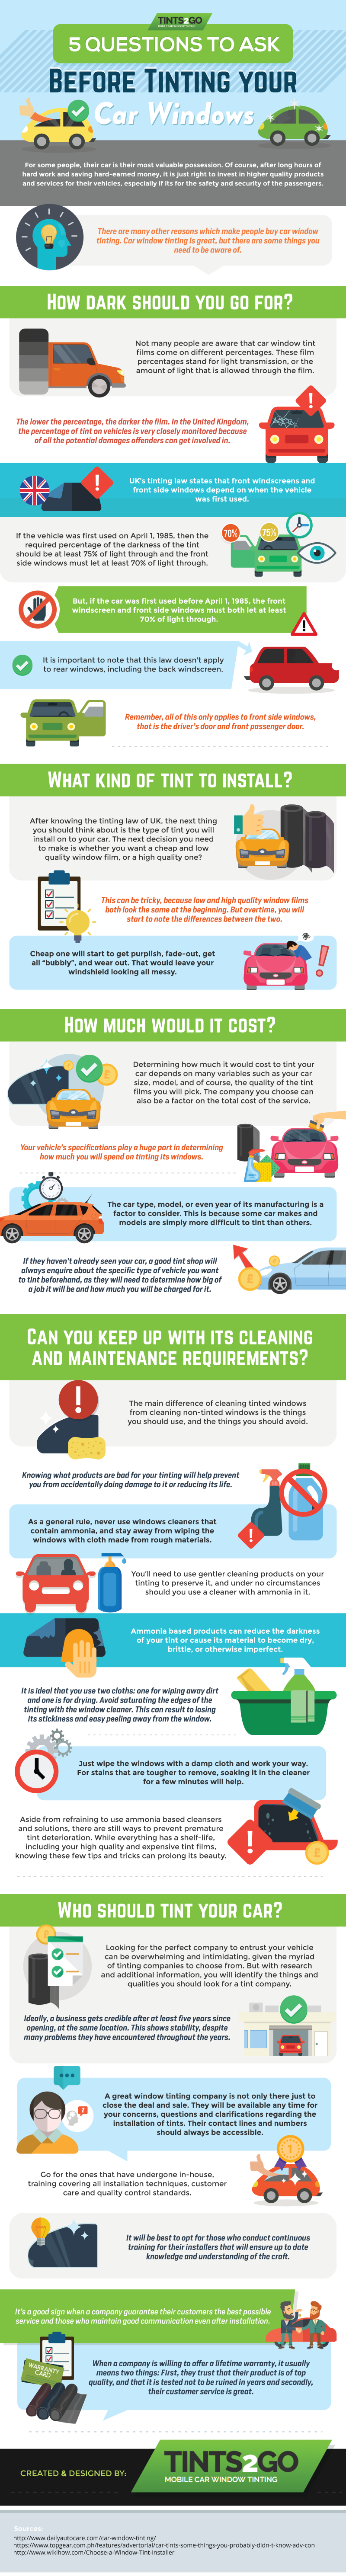 5 Questions to ask Before Tinting your car windows